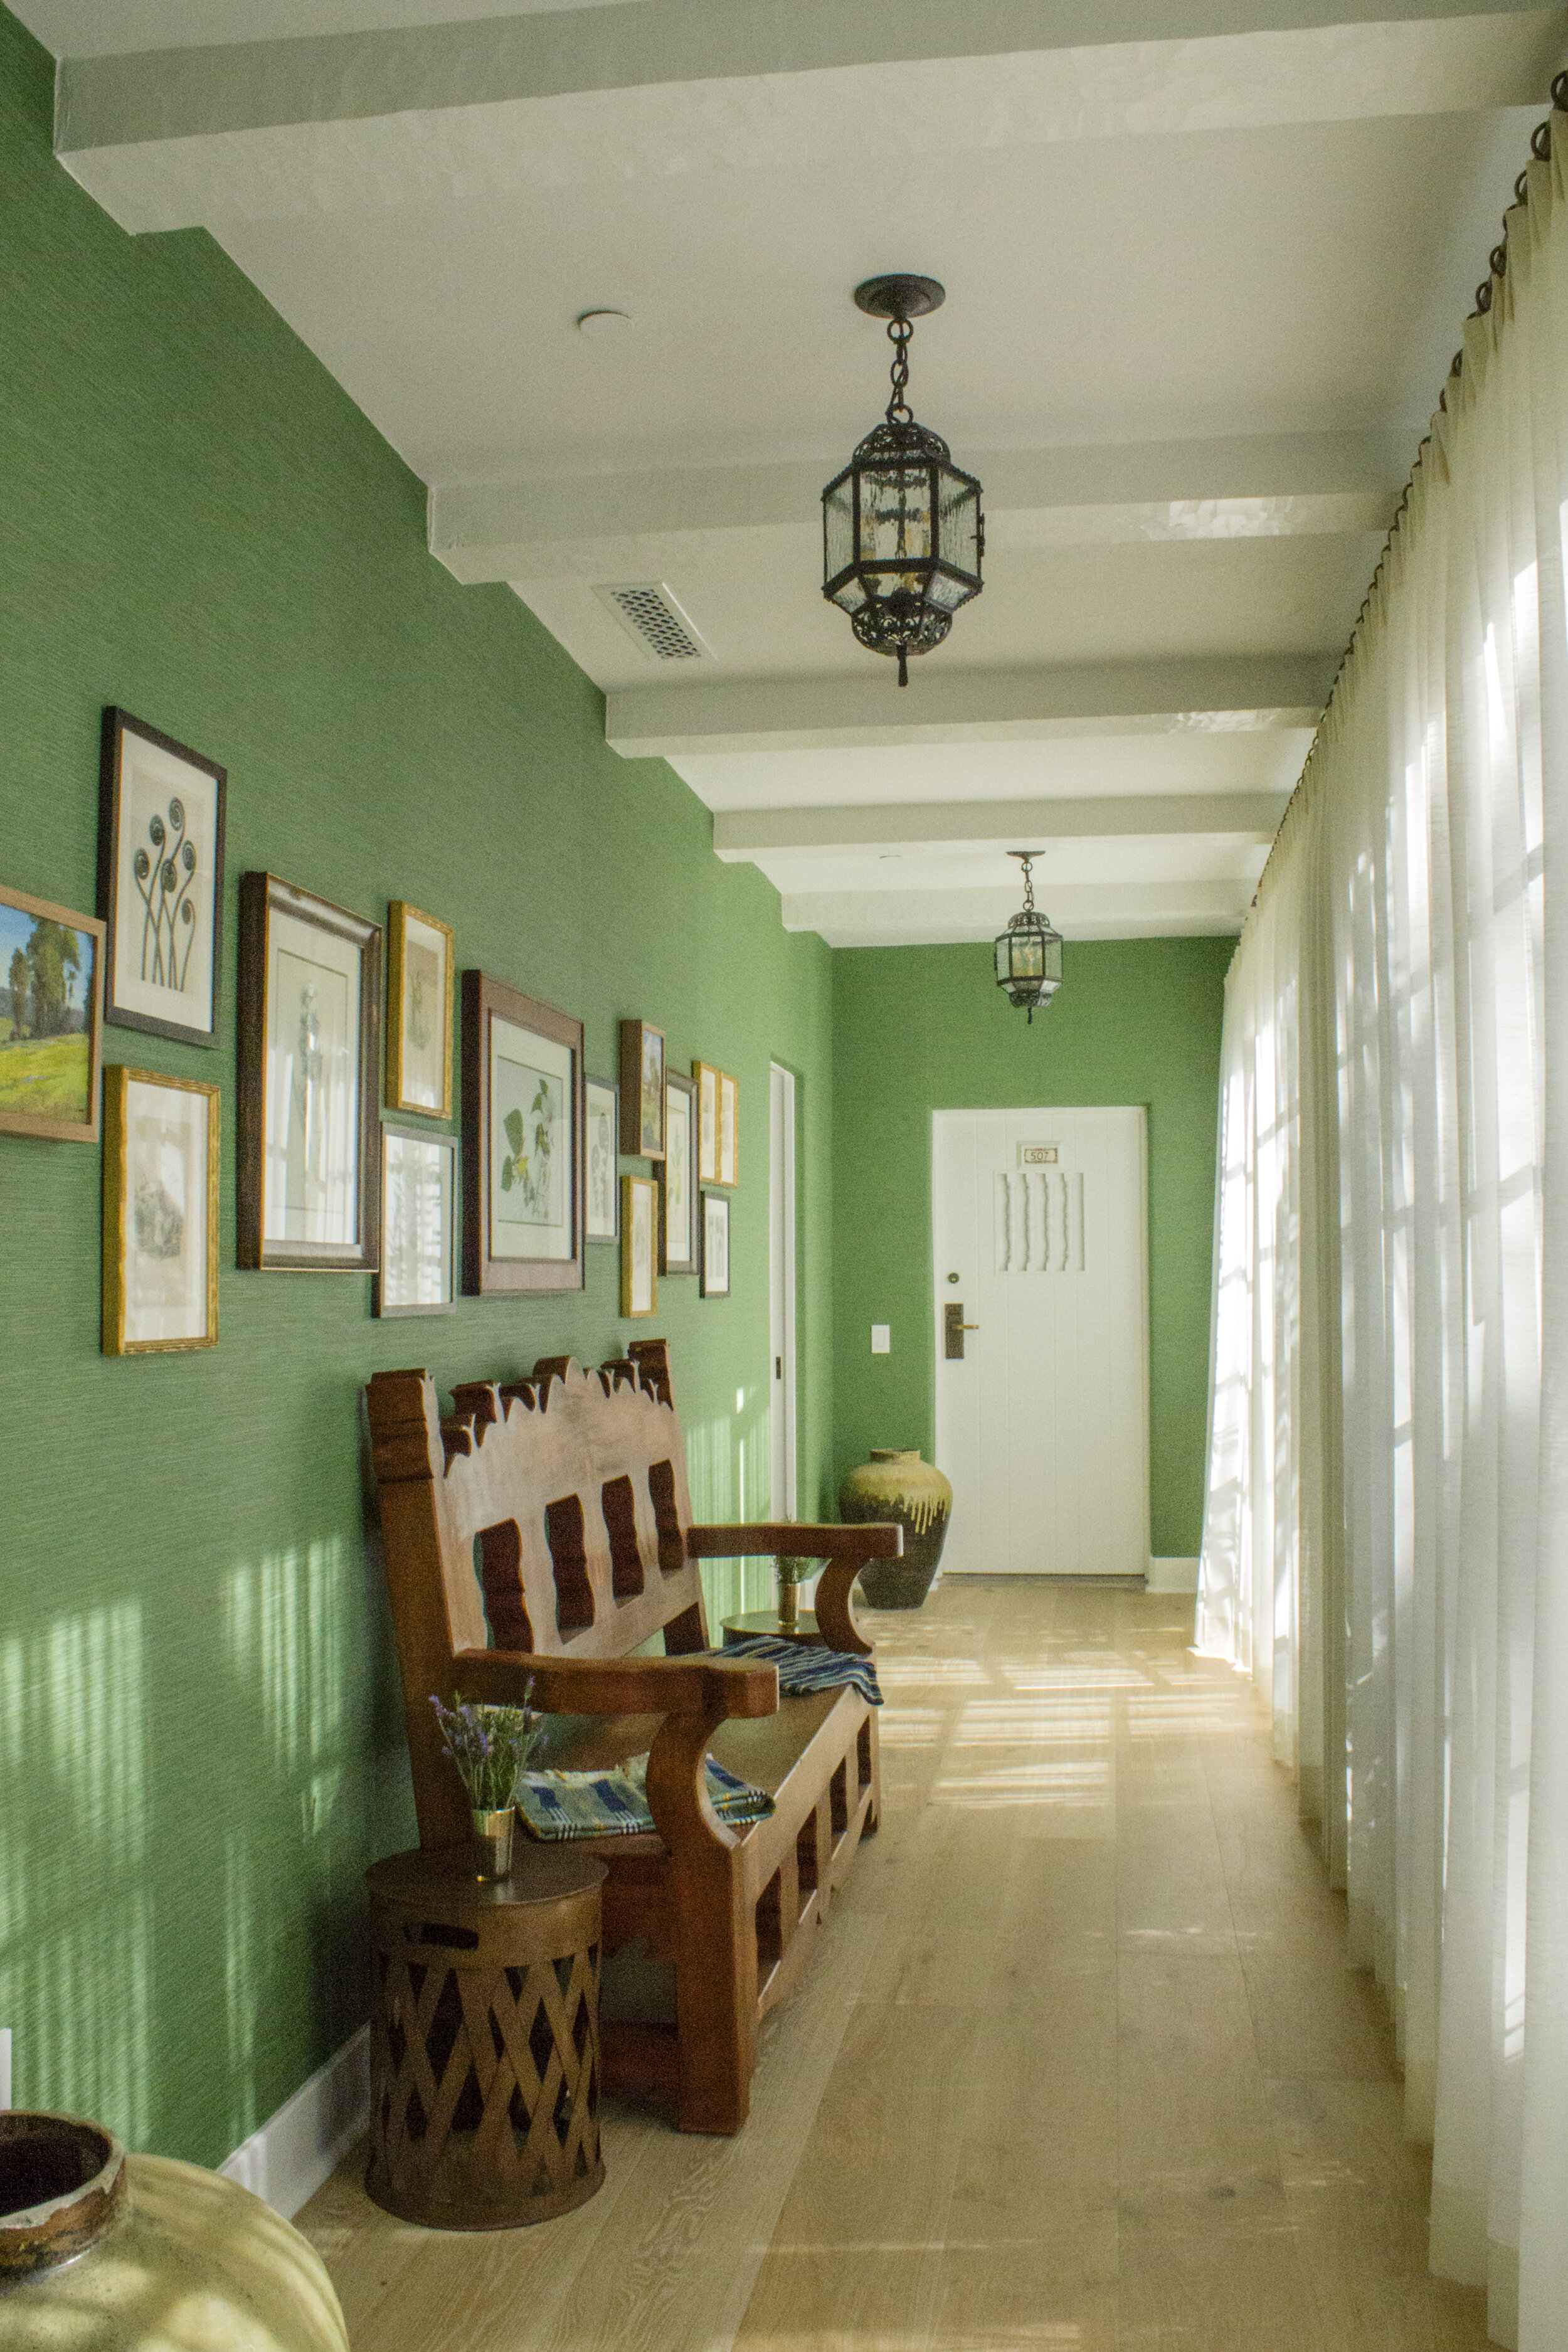 Cool green hallway, adding a dominate visual interest without overpowering the minimalist design.